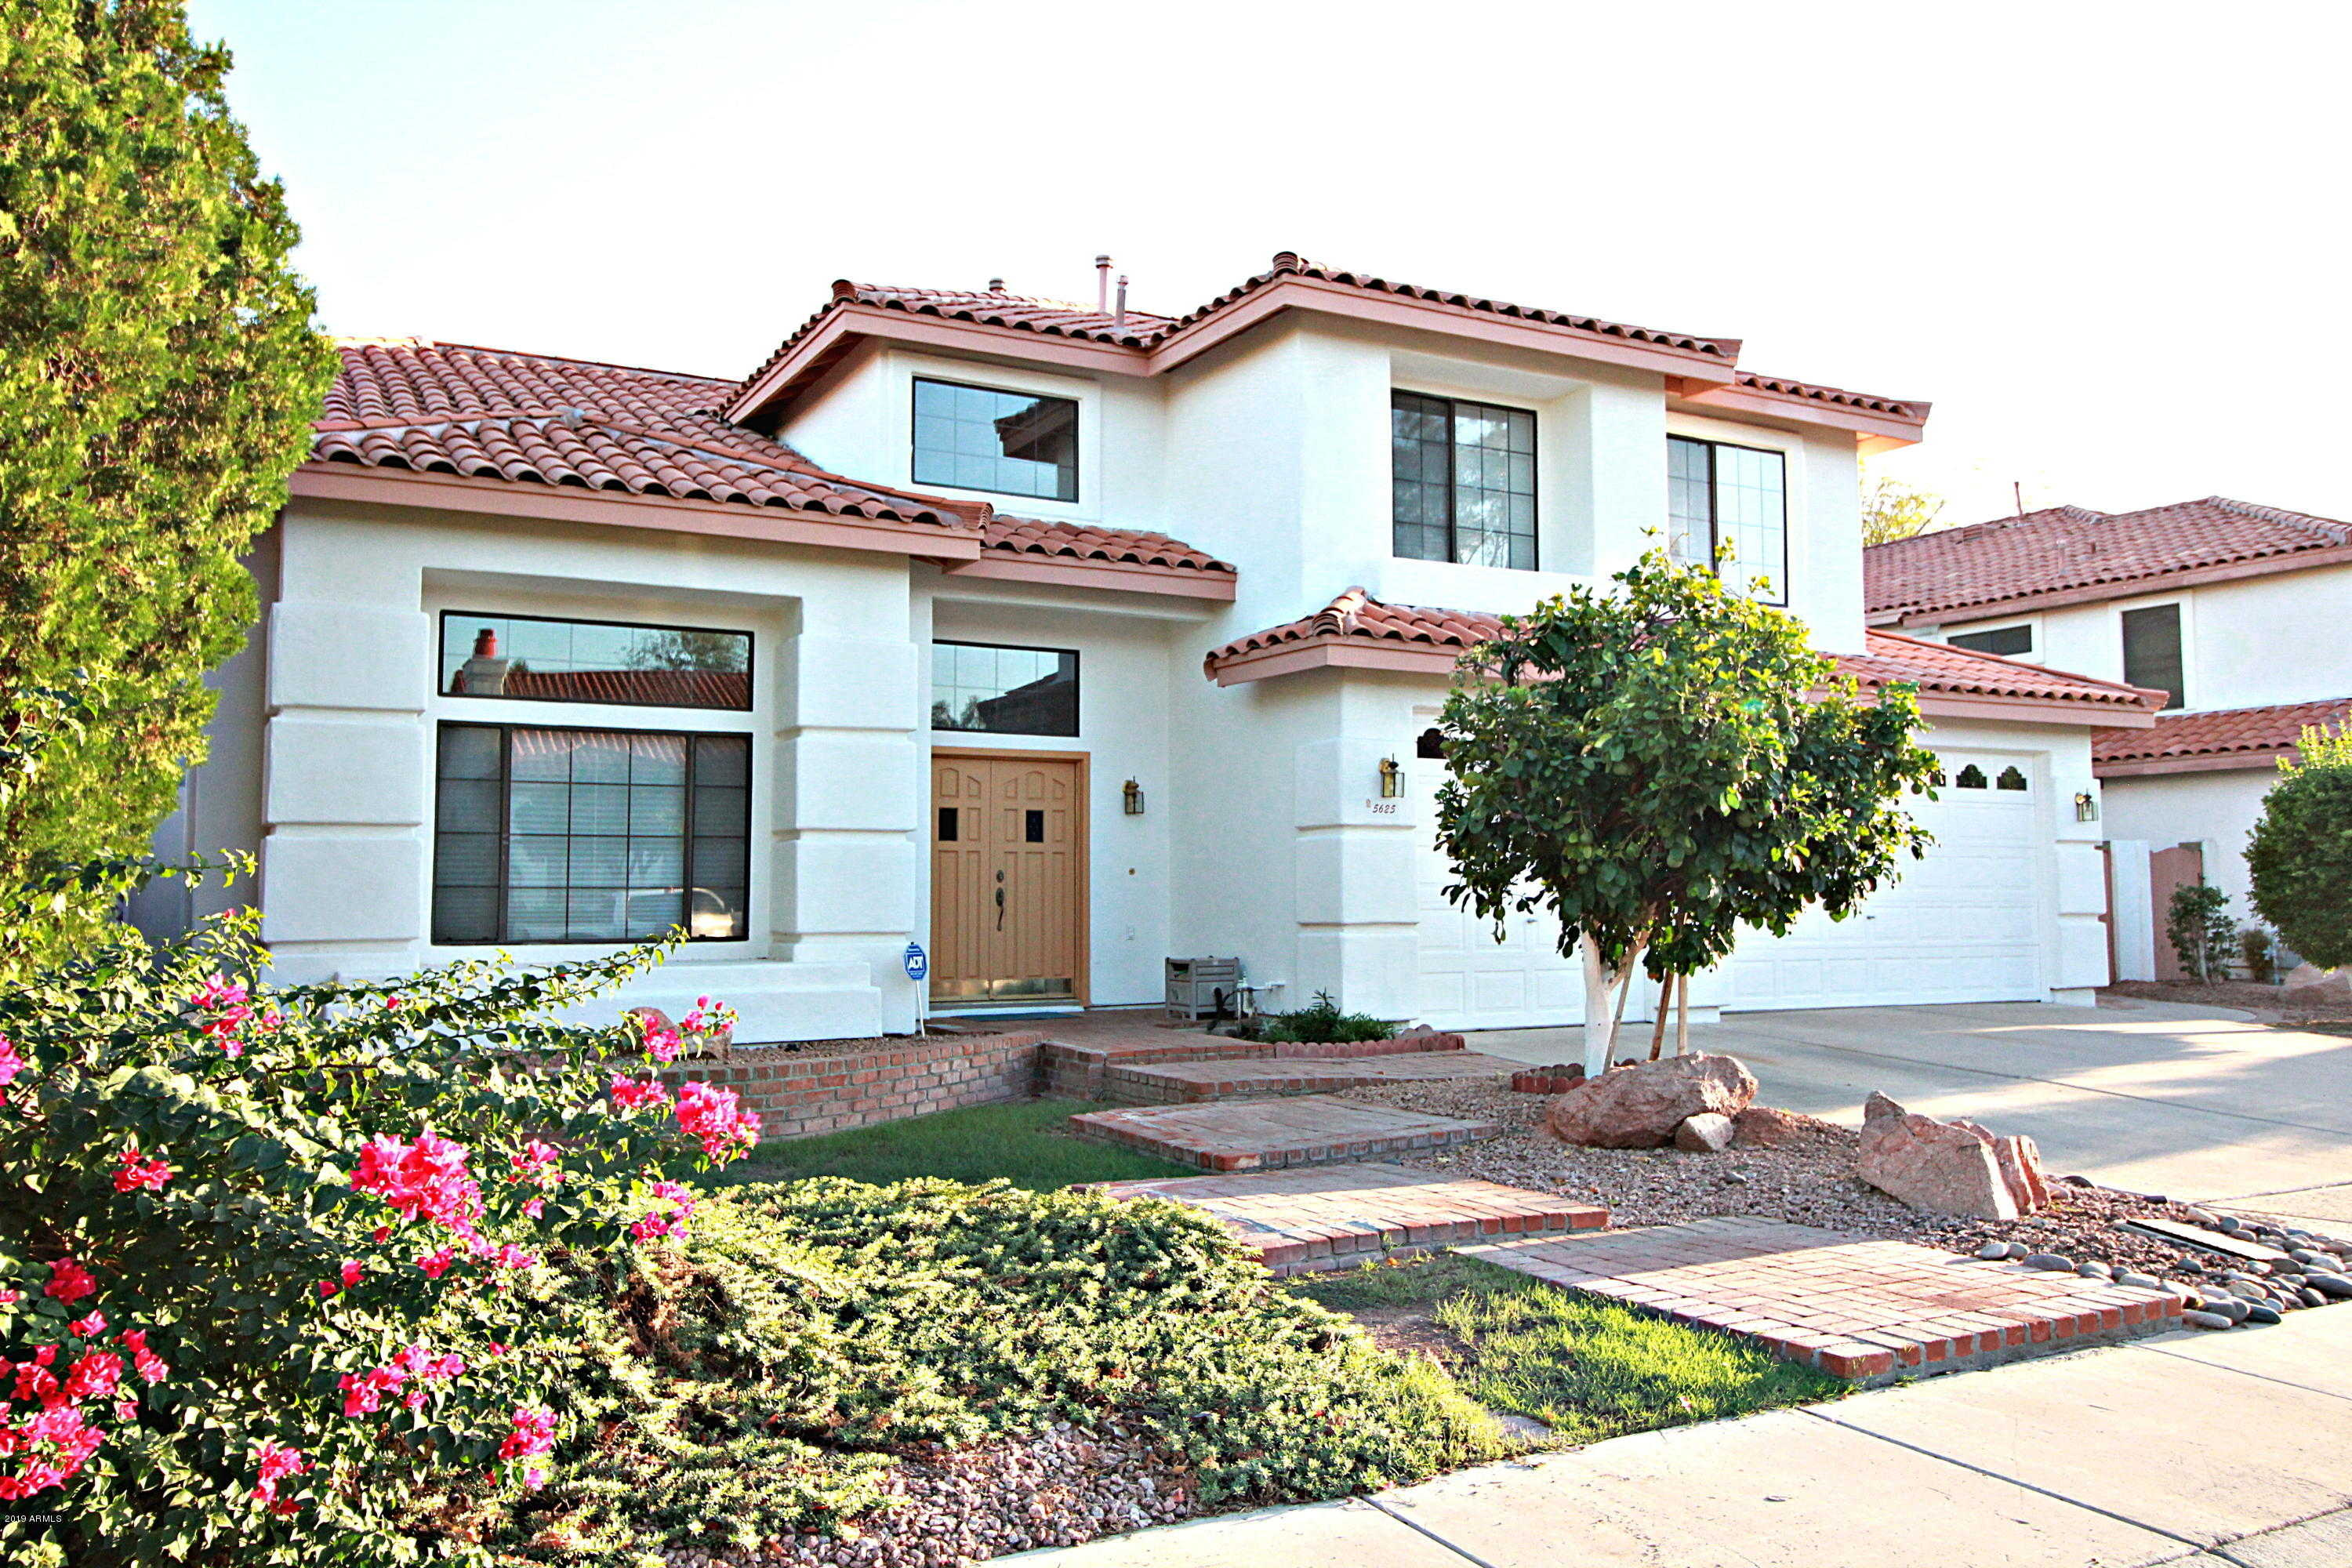 $357,000 - 4Br/3Ba - Home for Sale in Mission Groves 2 At Marshall Ranch Lt 1-76 Tr A B, Glendale